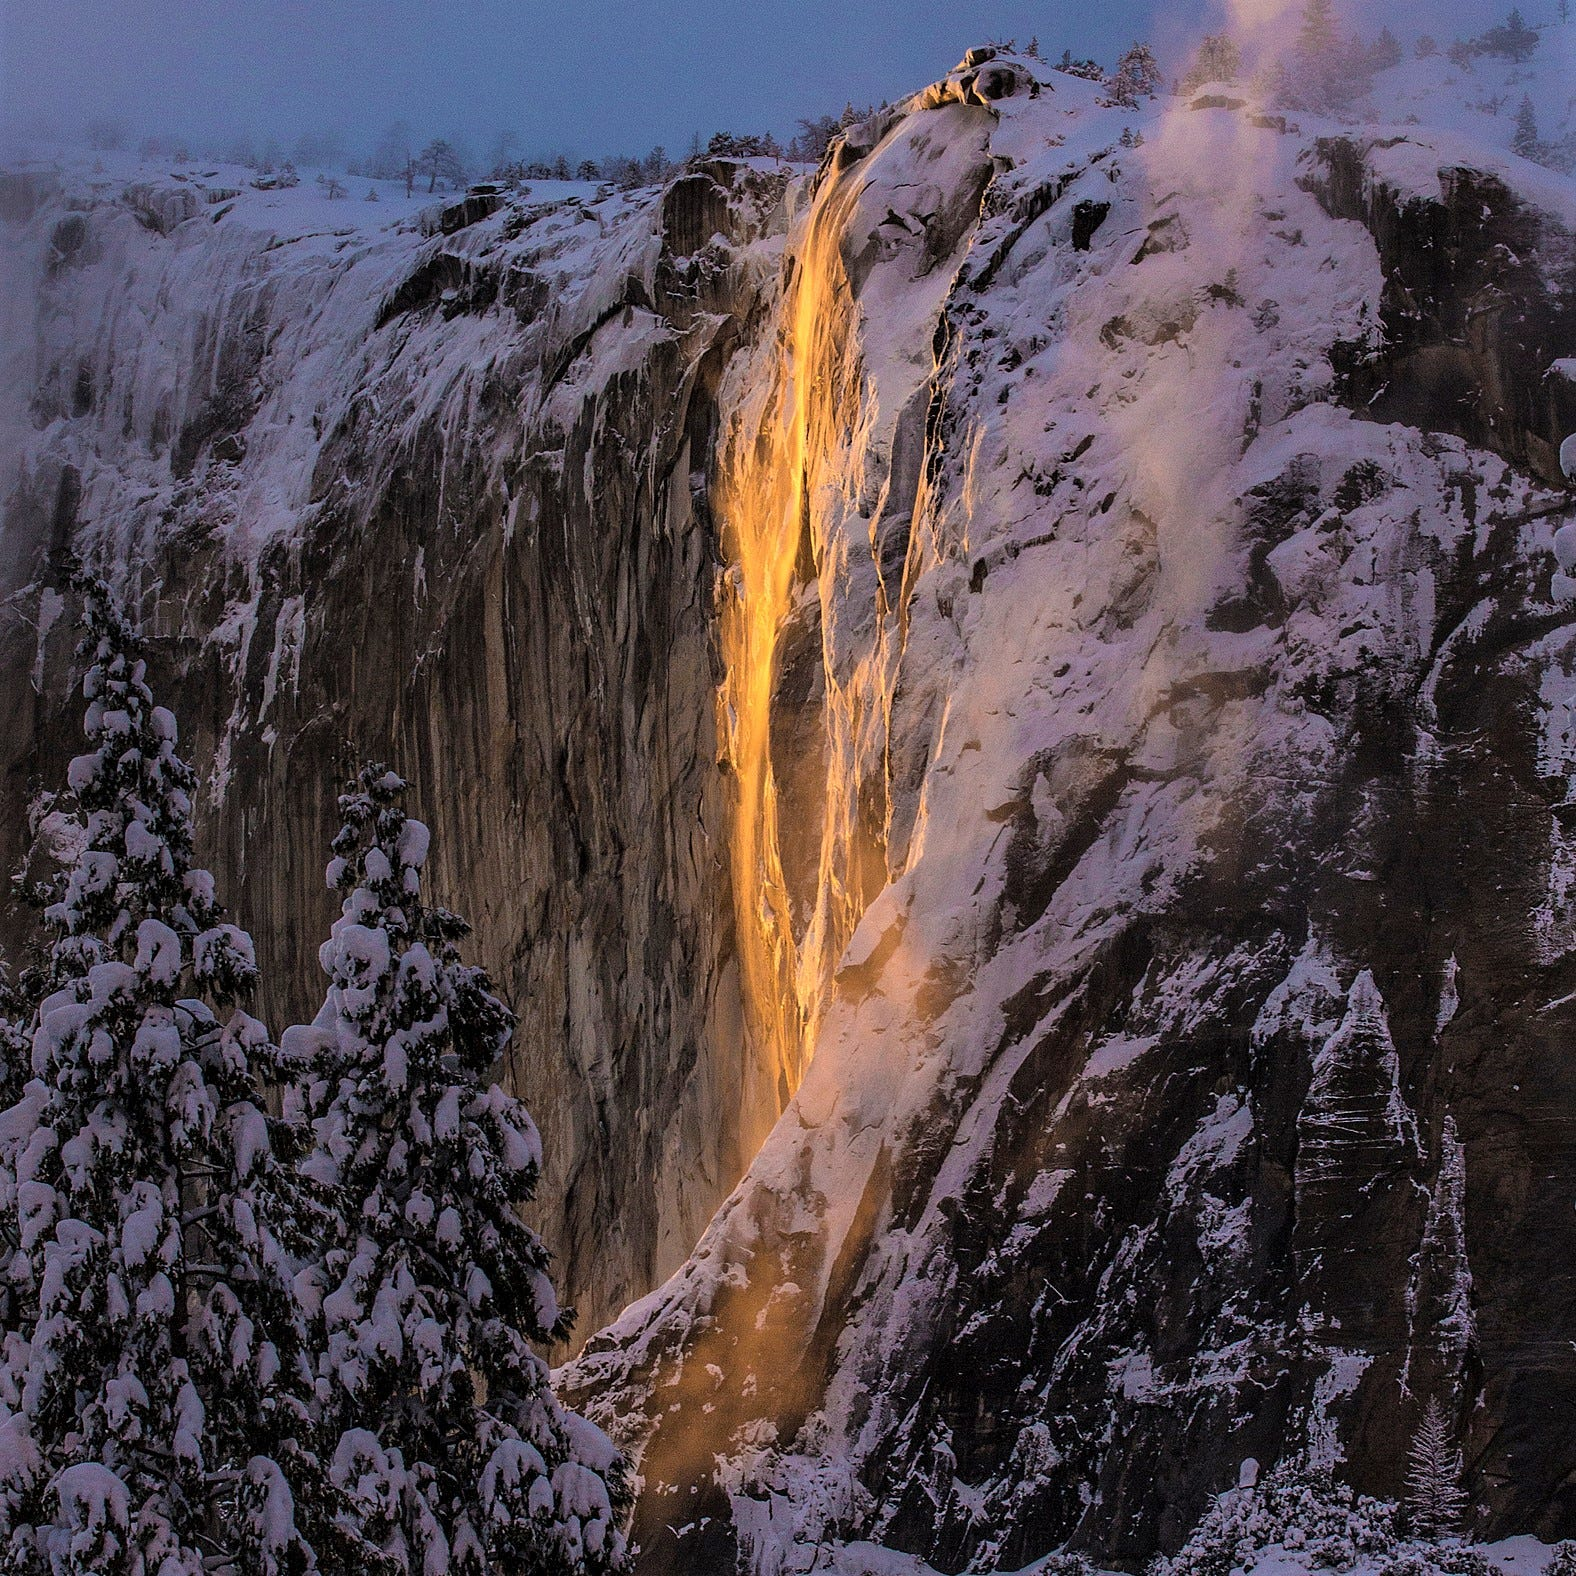 'Firefall' is back at Yosemite National Park, and it stuns visitors